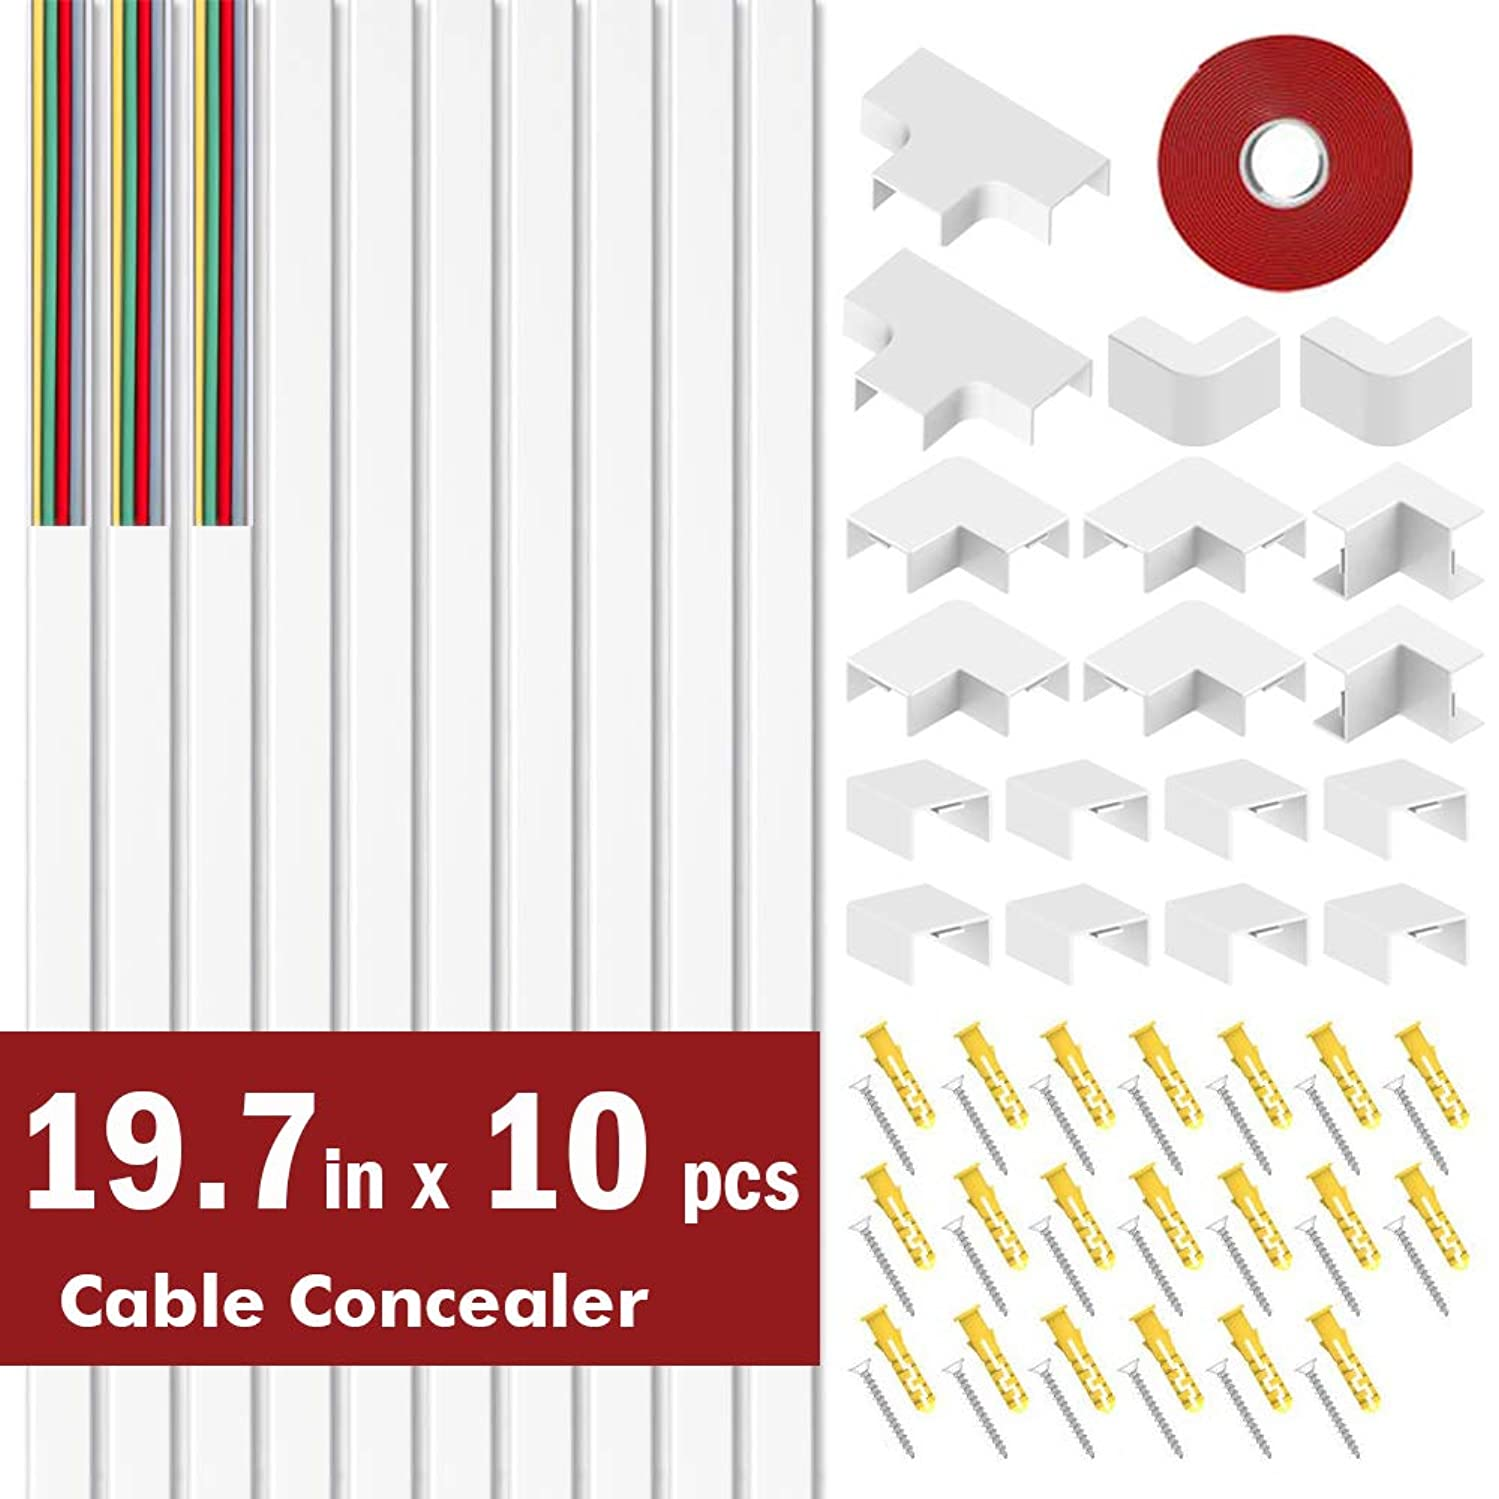 "BEYYON Cord Cover On-Wall Cable Concealer Raceway Kit, 197"" Cable Management Cord Hider to Hide Wall Mounted TV Cables, Speaker Wires, Computer Cords - 0.98"